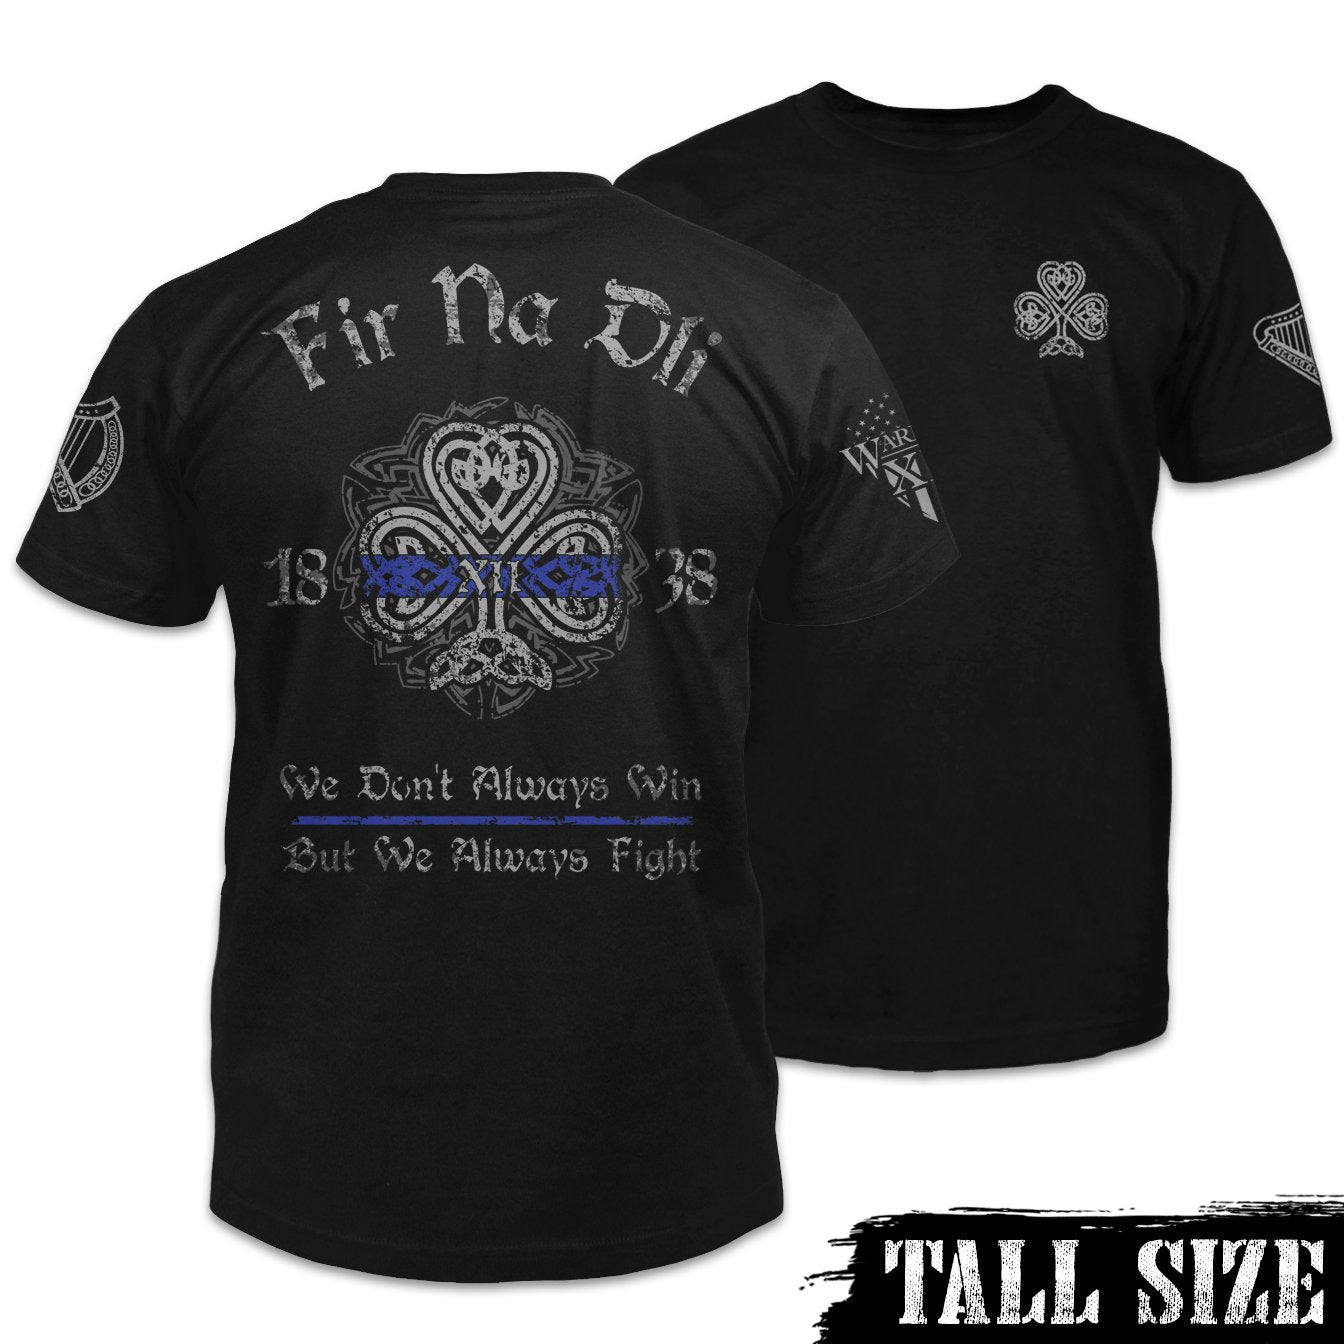 Fir Na Dli Shirt Combo Tall Size